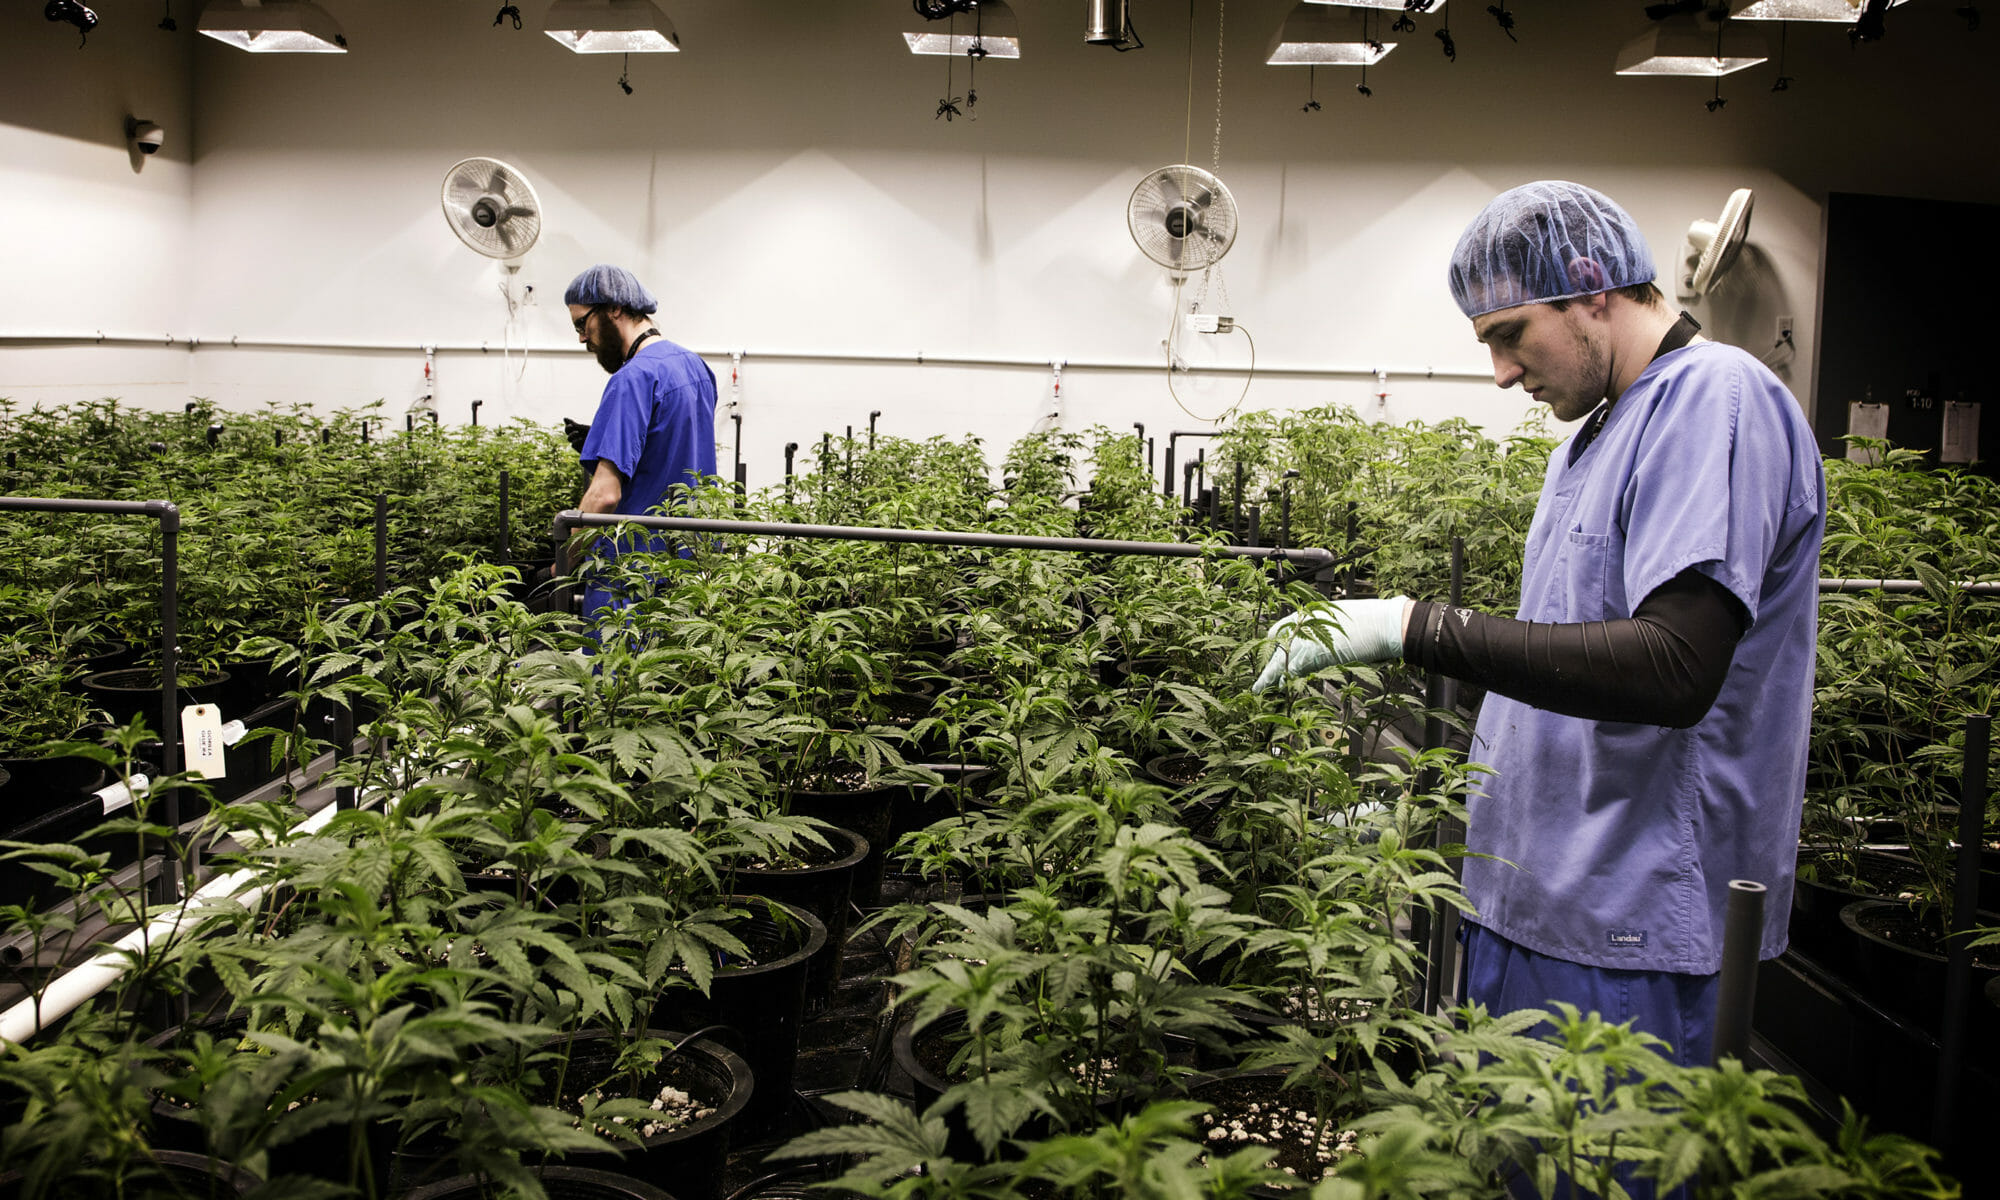 Two employees working on an irrigation system amid rows of cannabis